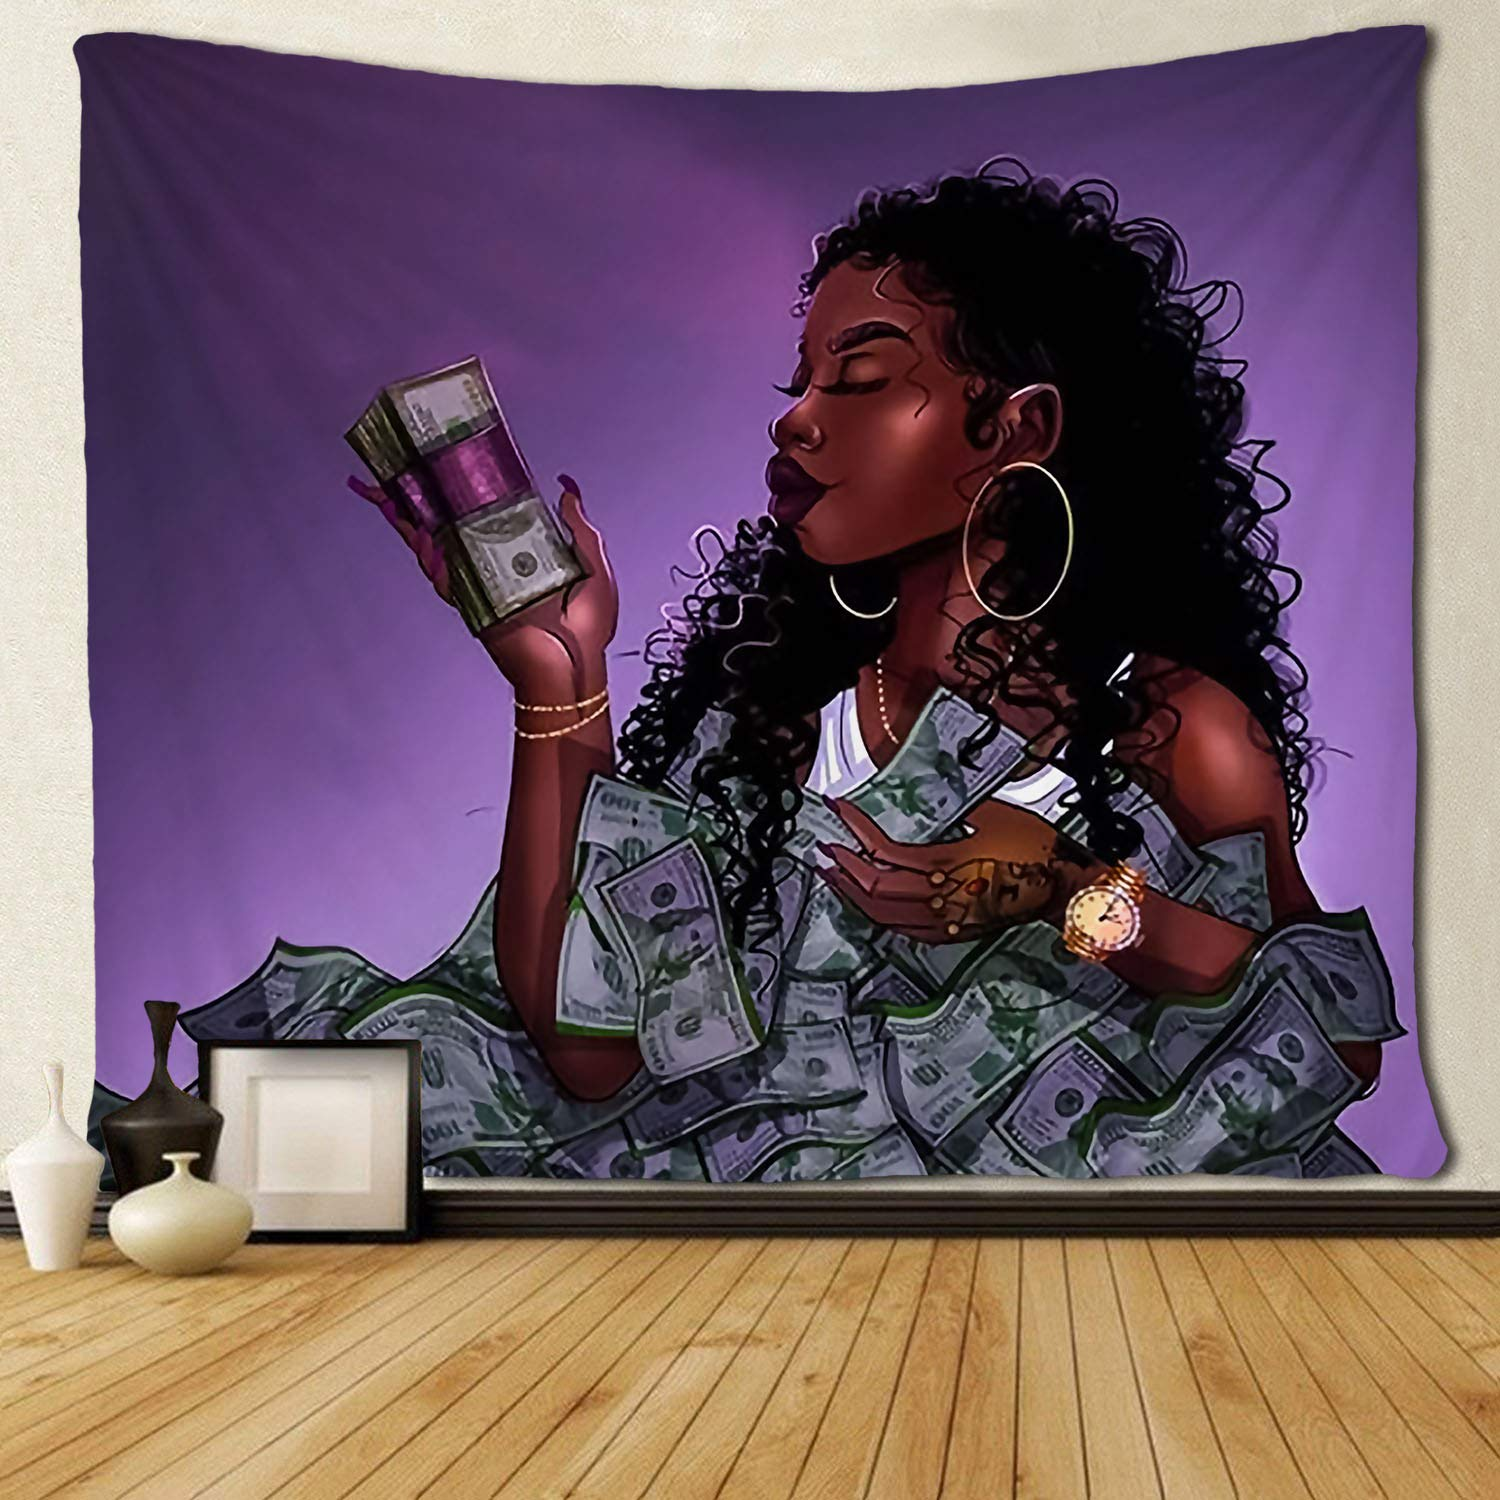 Black Art Tapestry Afro African Ameircan Women Girl Love Us Dollor Money Wall Hanging